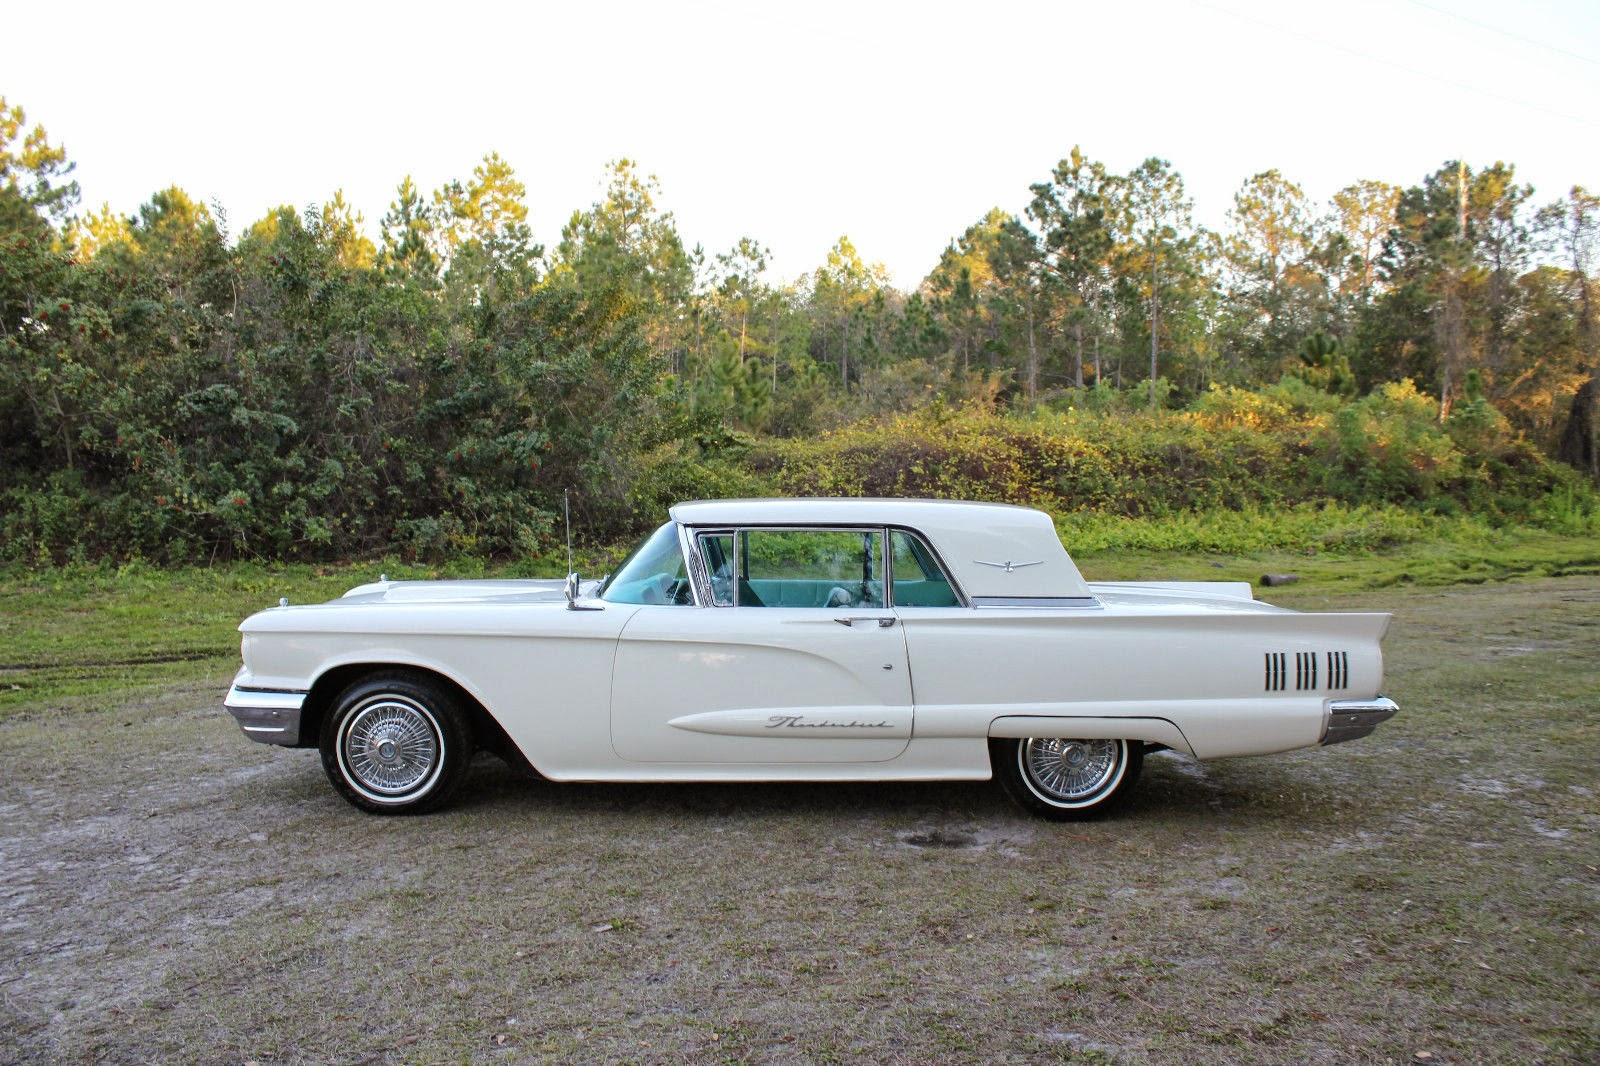 Most Poular Classic American Cars